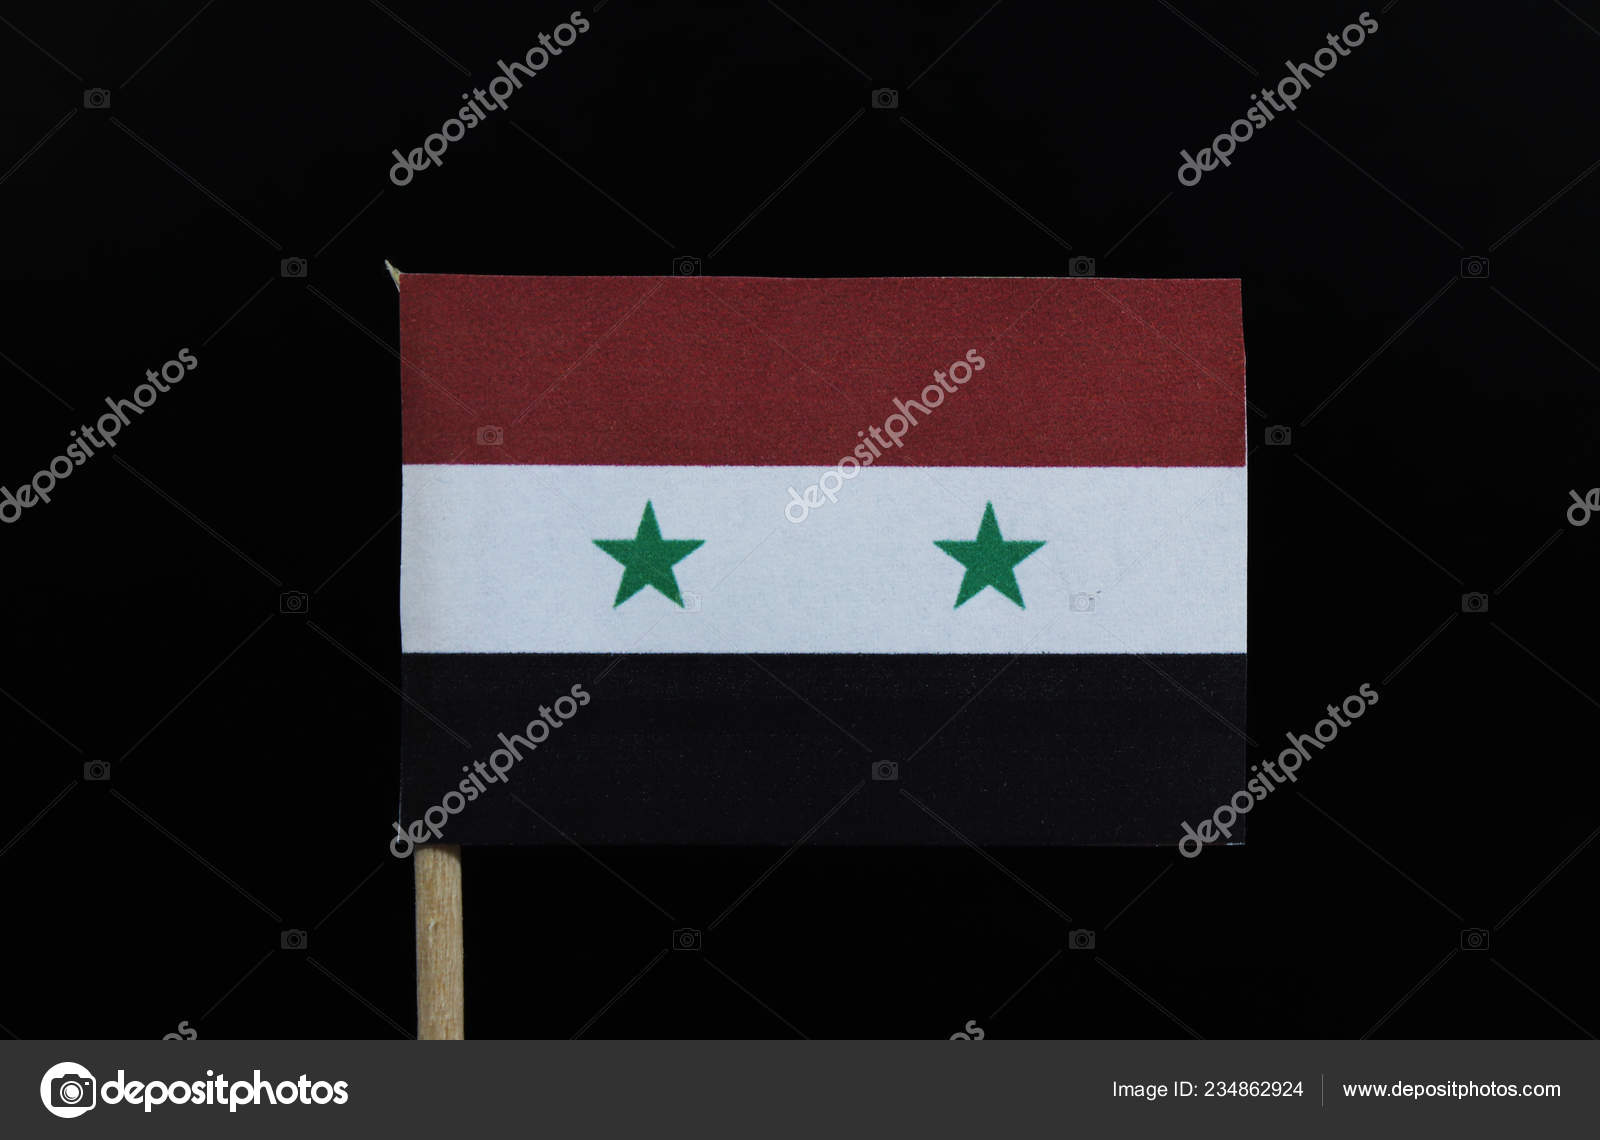 Symbolic Official Flag Syria Toothpick Black Background Horizontal